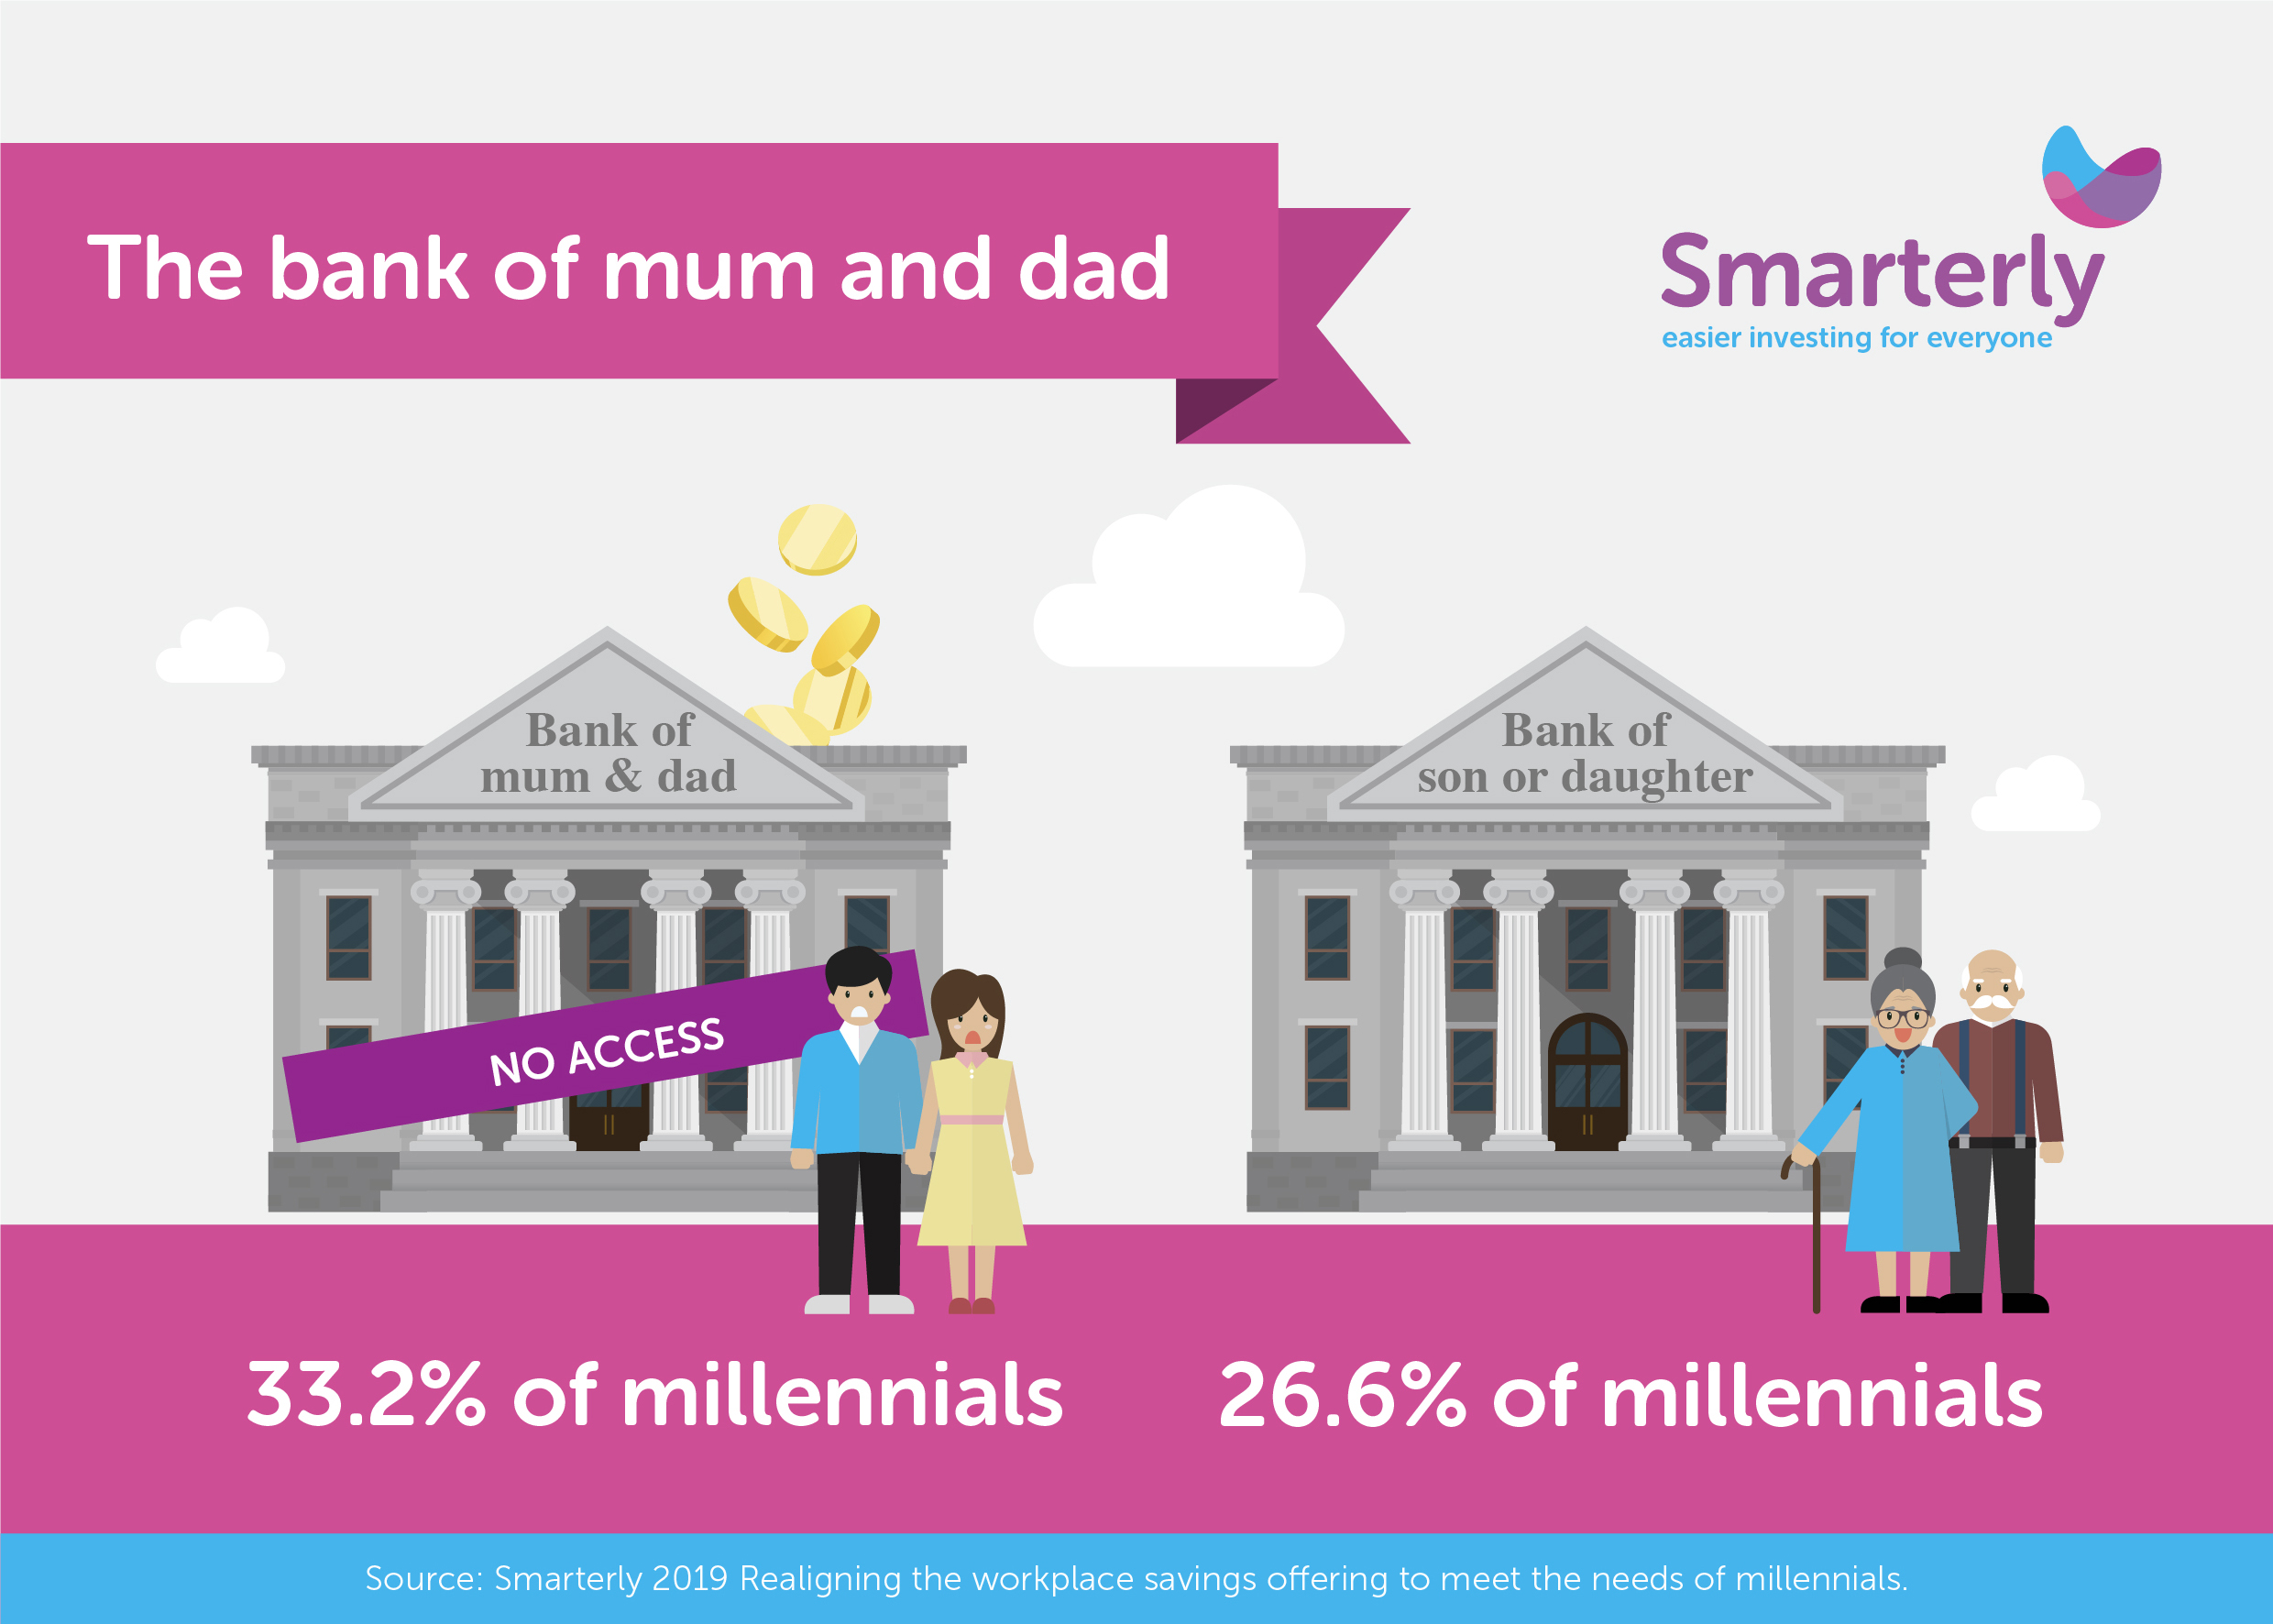 Bank of mum and dad trend shifts to bank of son or daughter alt